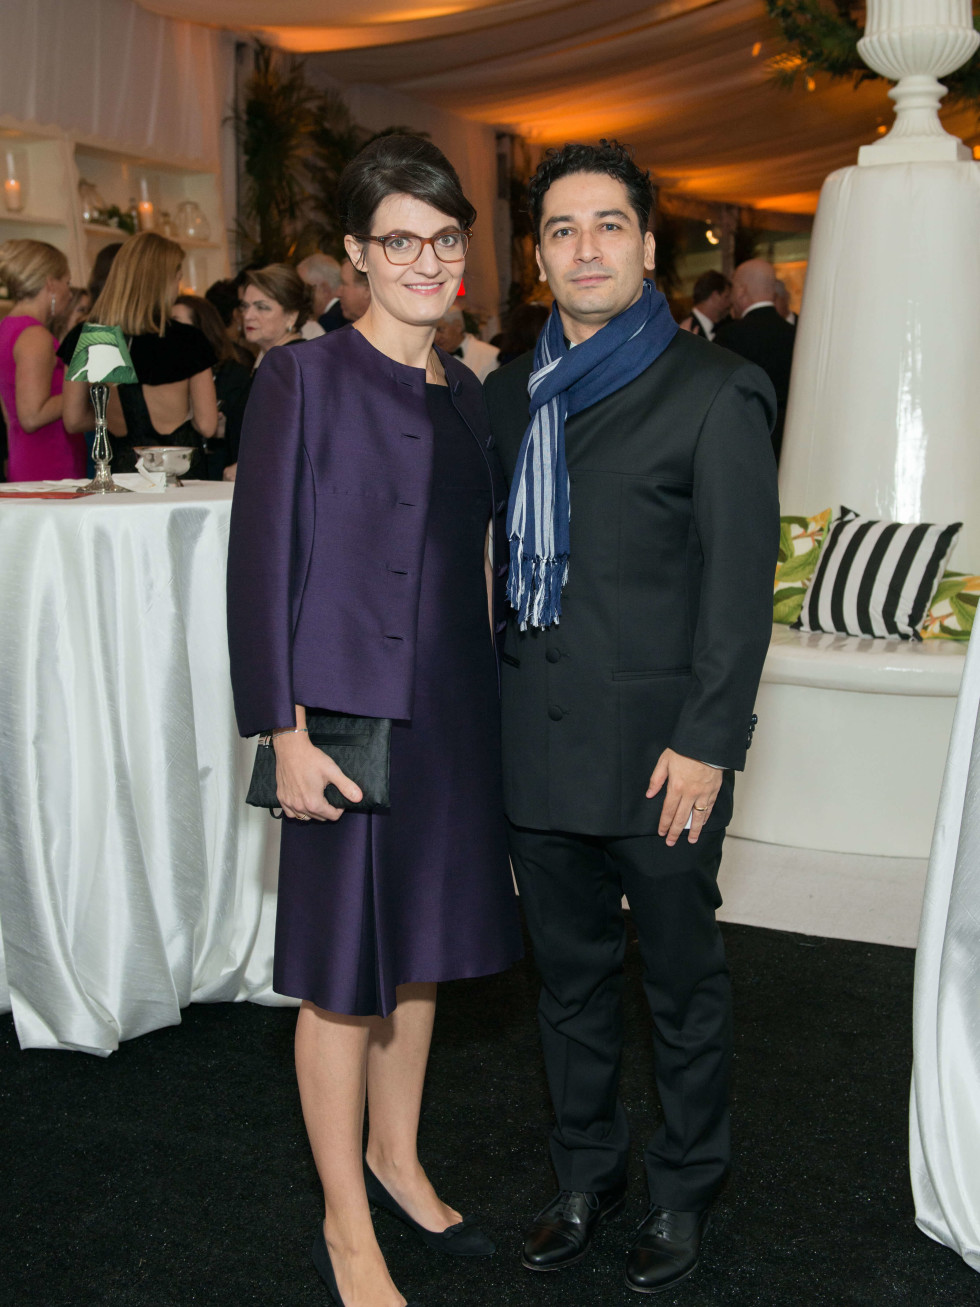 Jones Hall 50th Ball, Julia and Andres Orozco Estrada (Houston Symphony conductor)